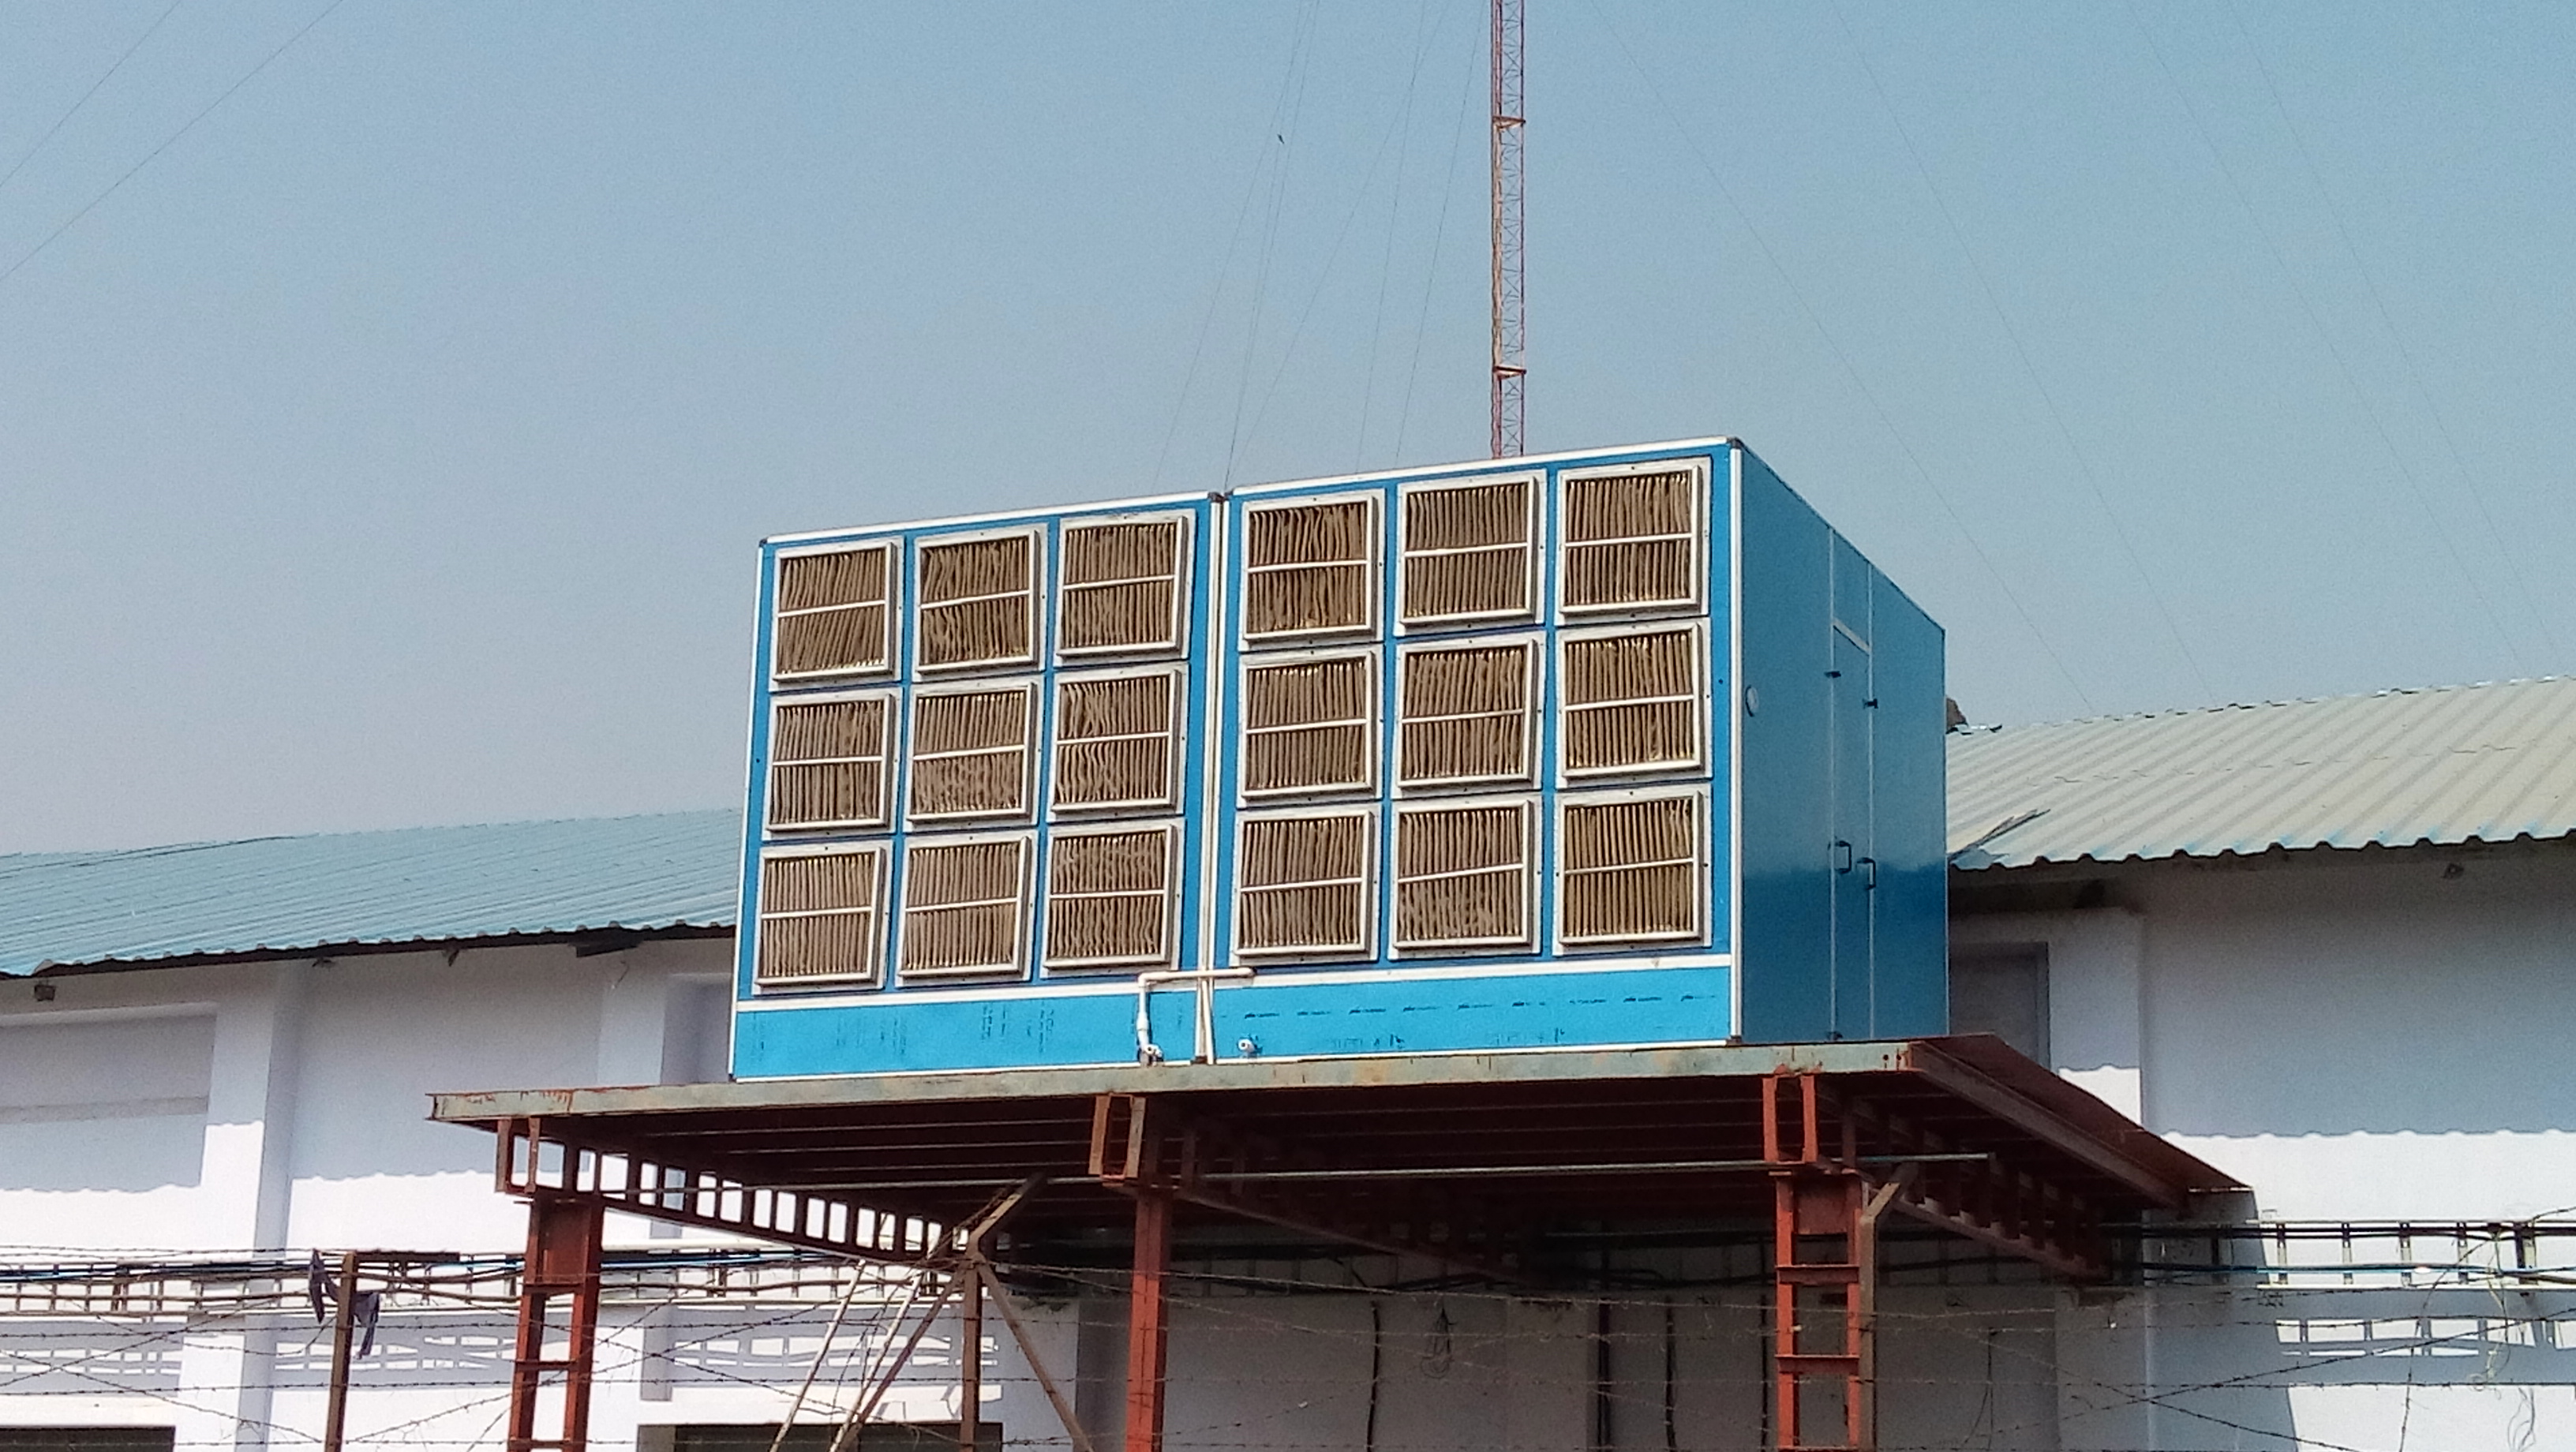 Industrial Air Washer System Manufacturer, Supplier, Exporter from Ahmedabad, Gujarat, India